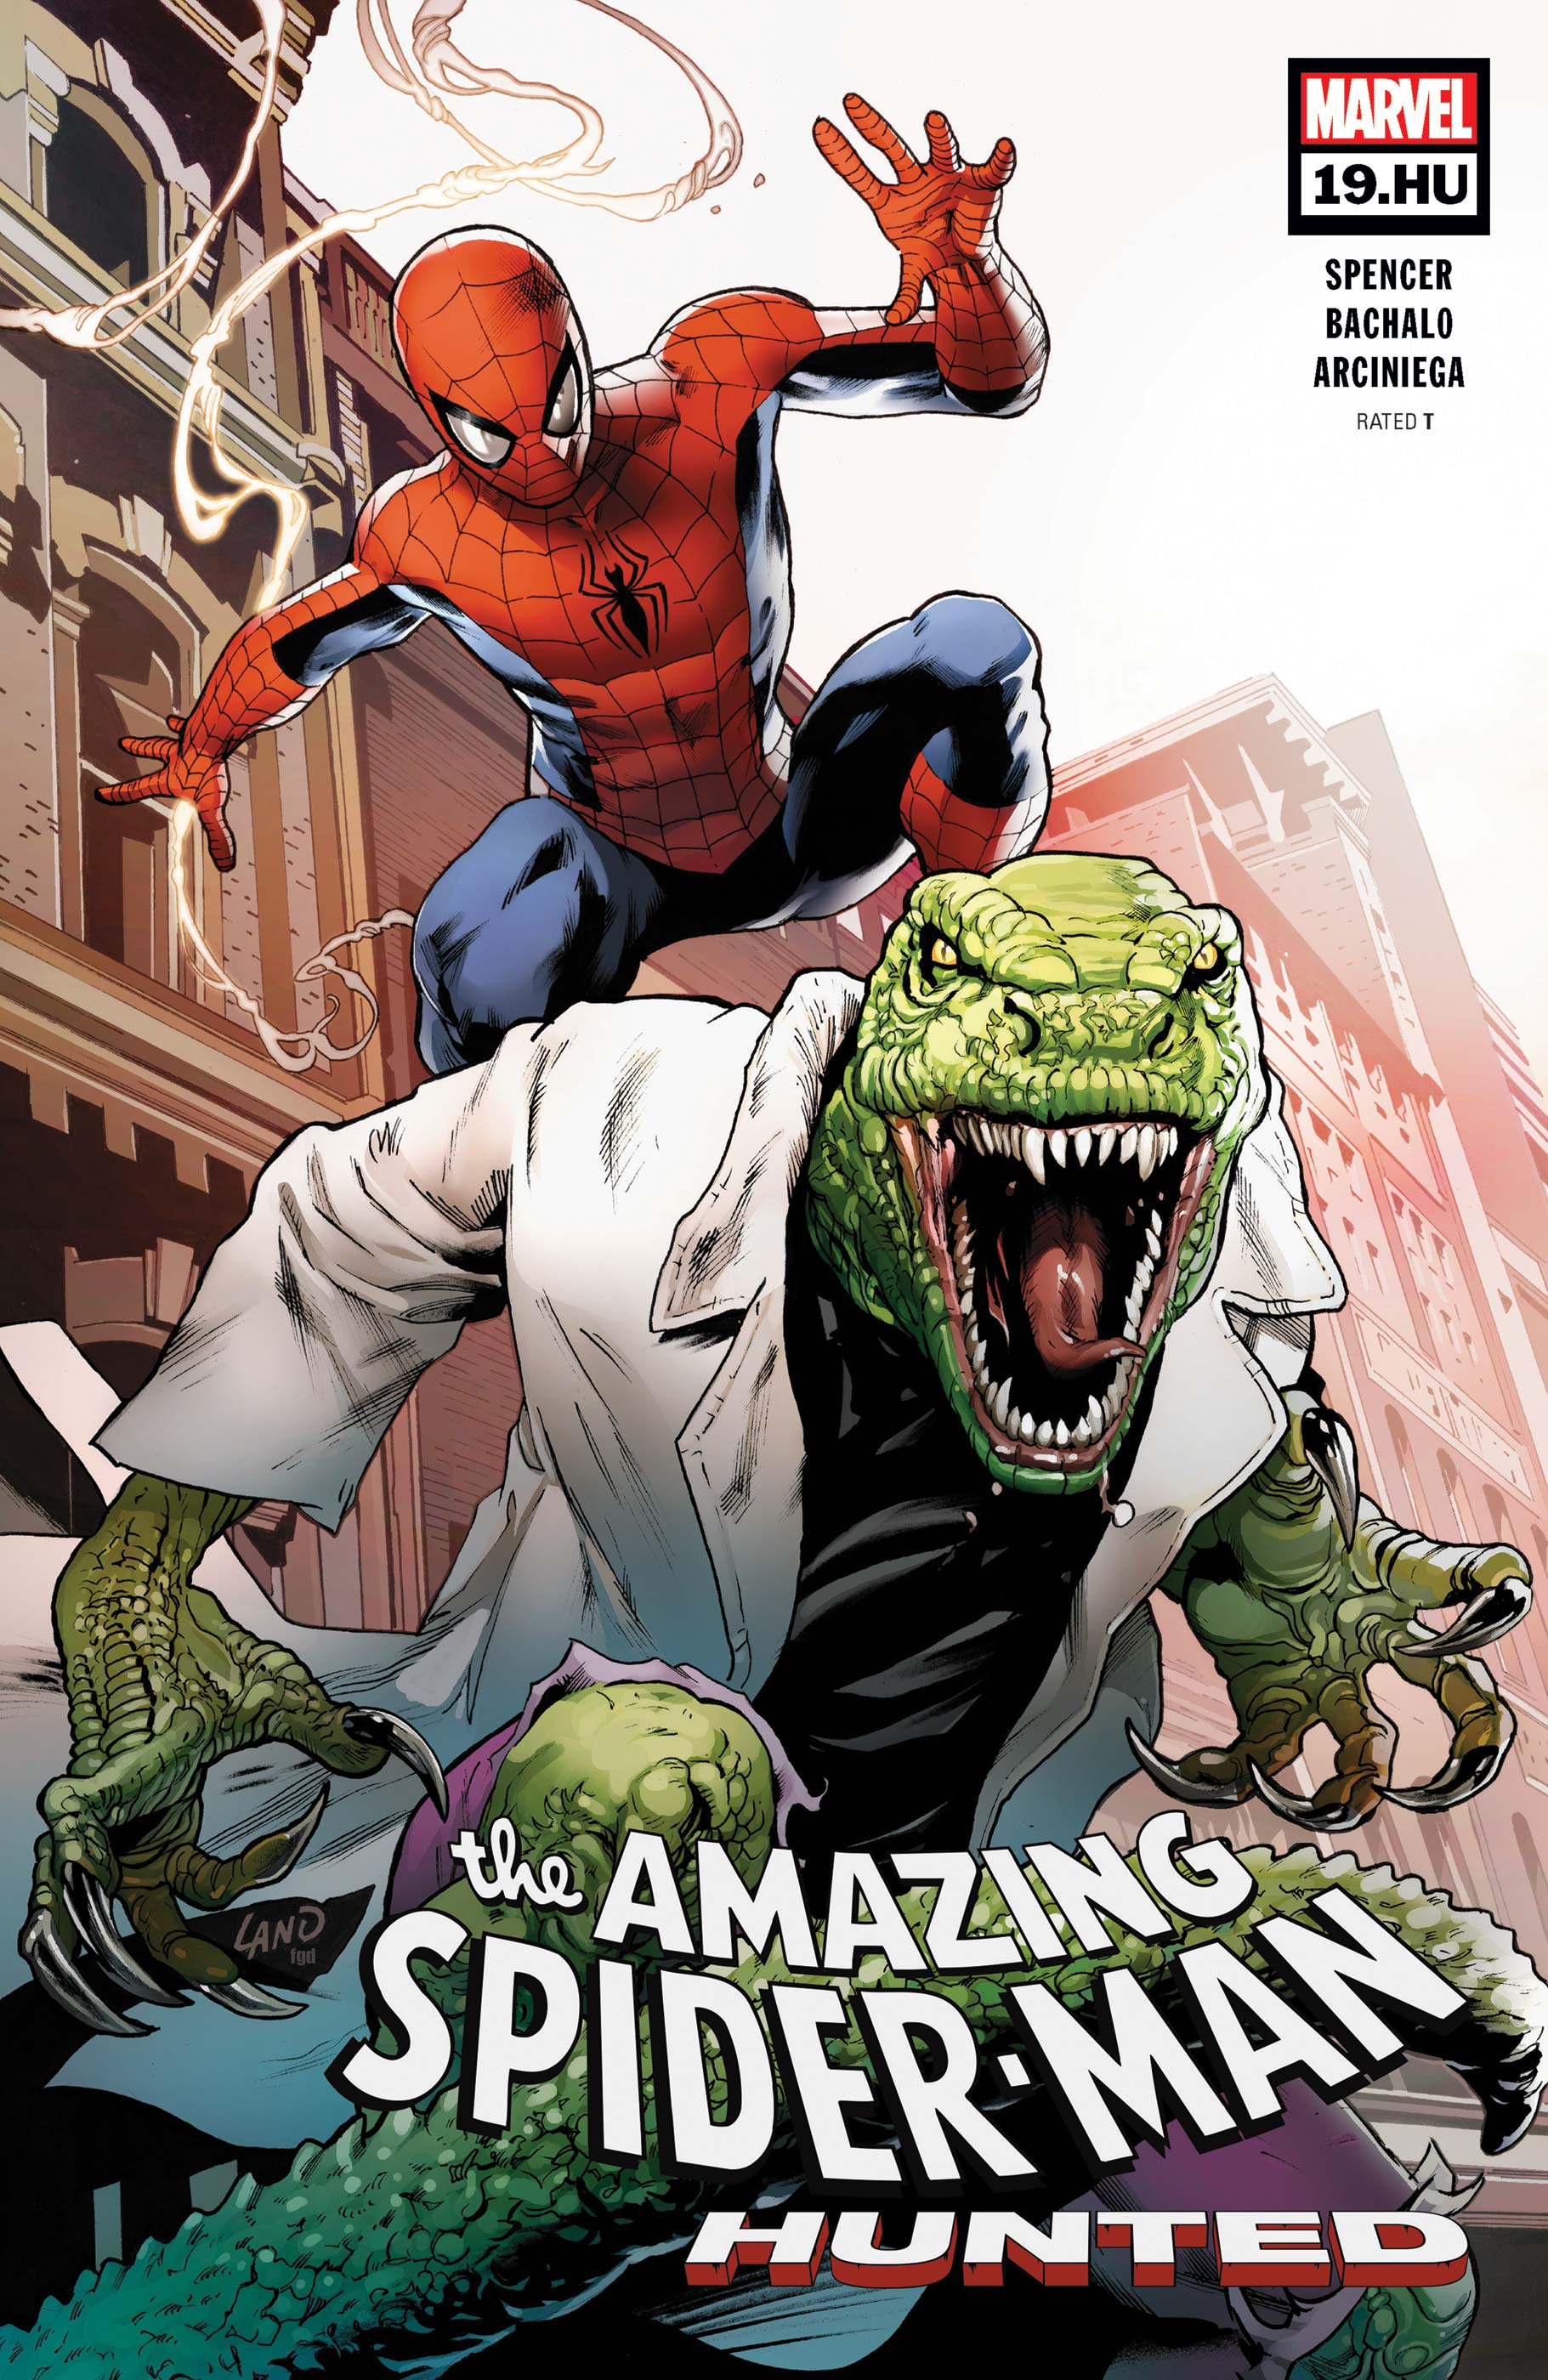 The Amazing Spider-Man (2018) #19.1